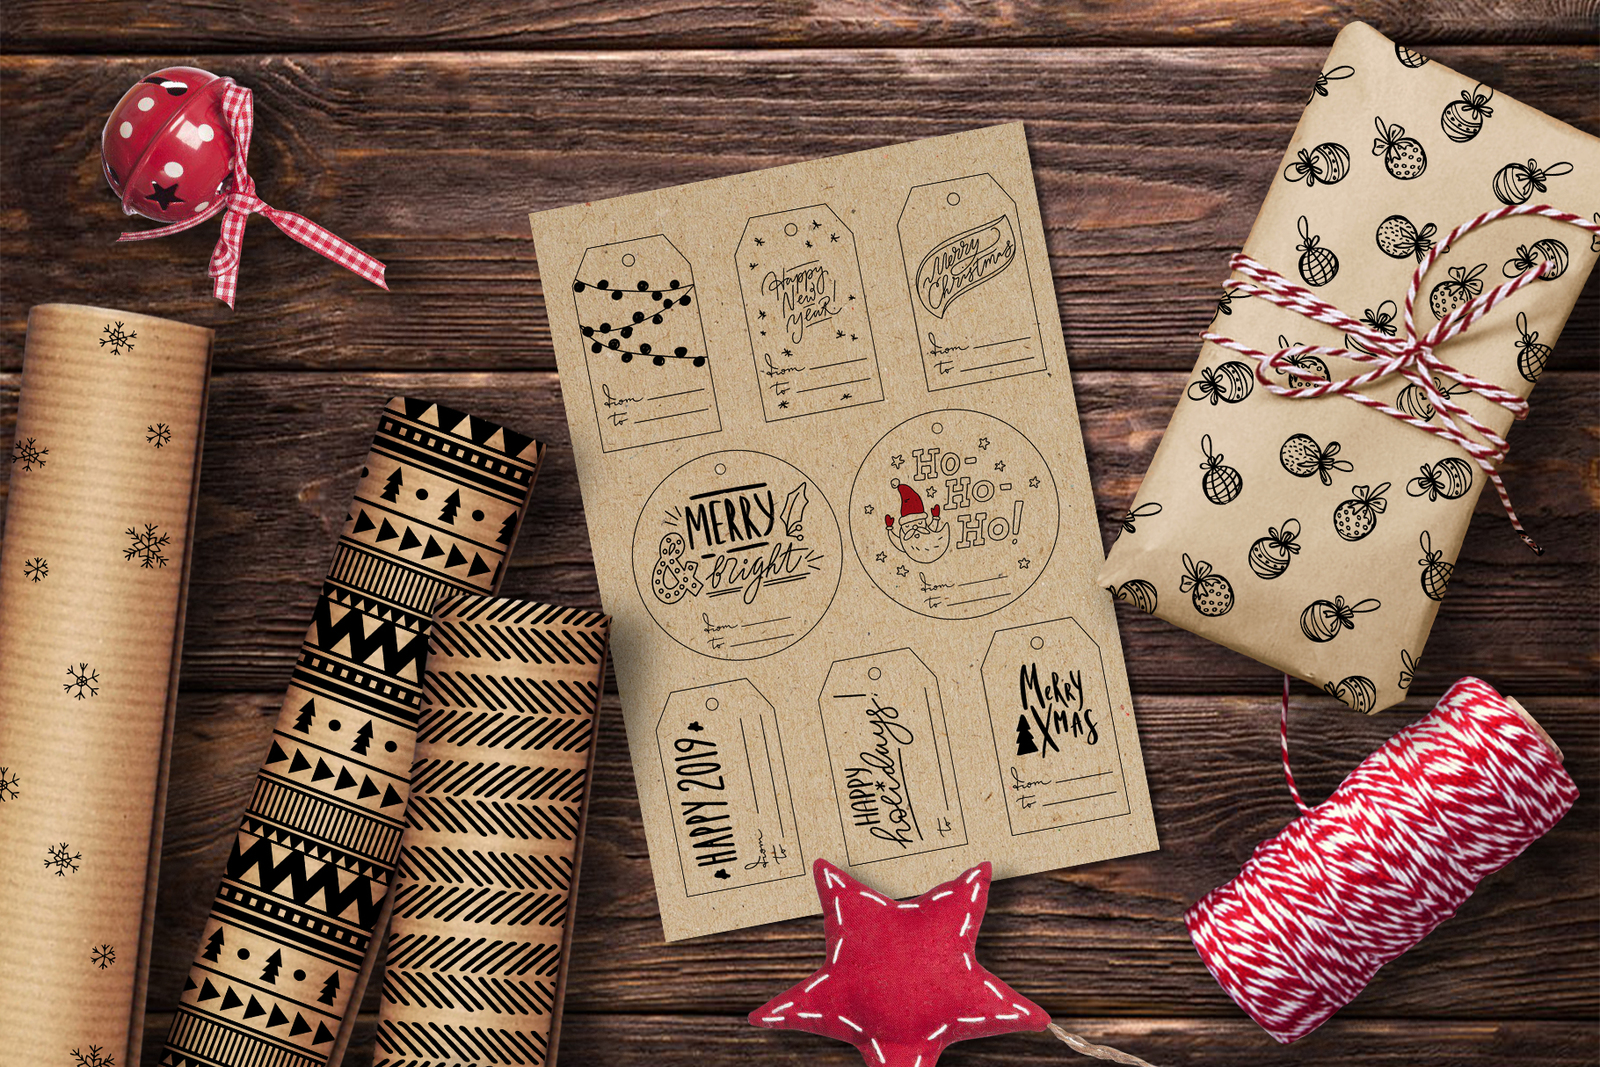 Christmas Crafters Pack – for DIY projects